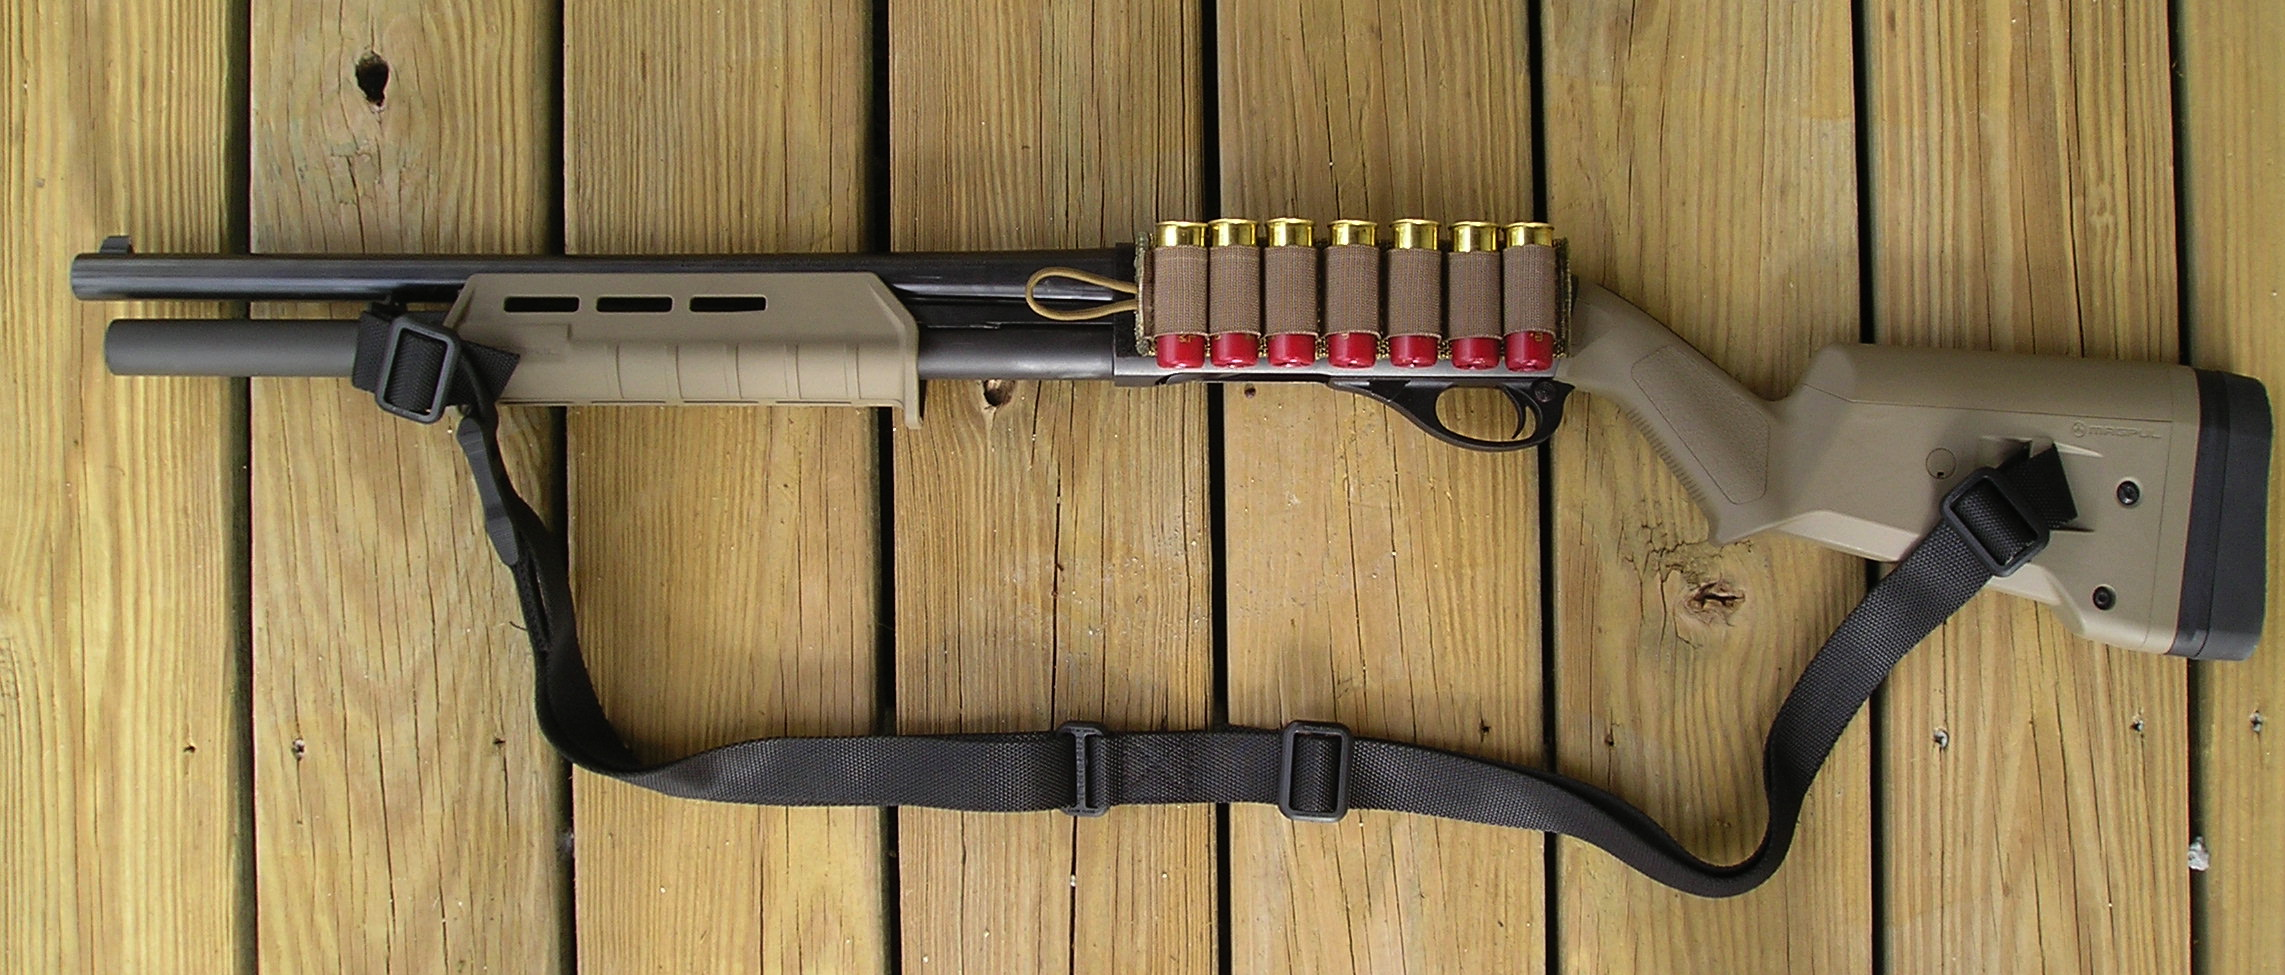 What options do you have, if any, on your home defense shotgun?-special-purpose-magpul.jpg